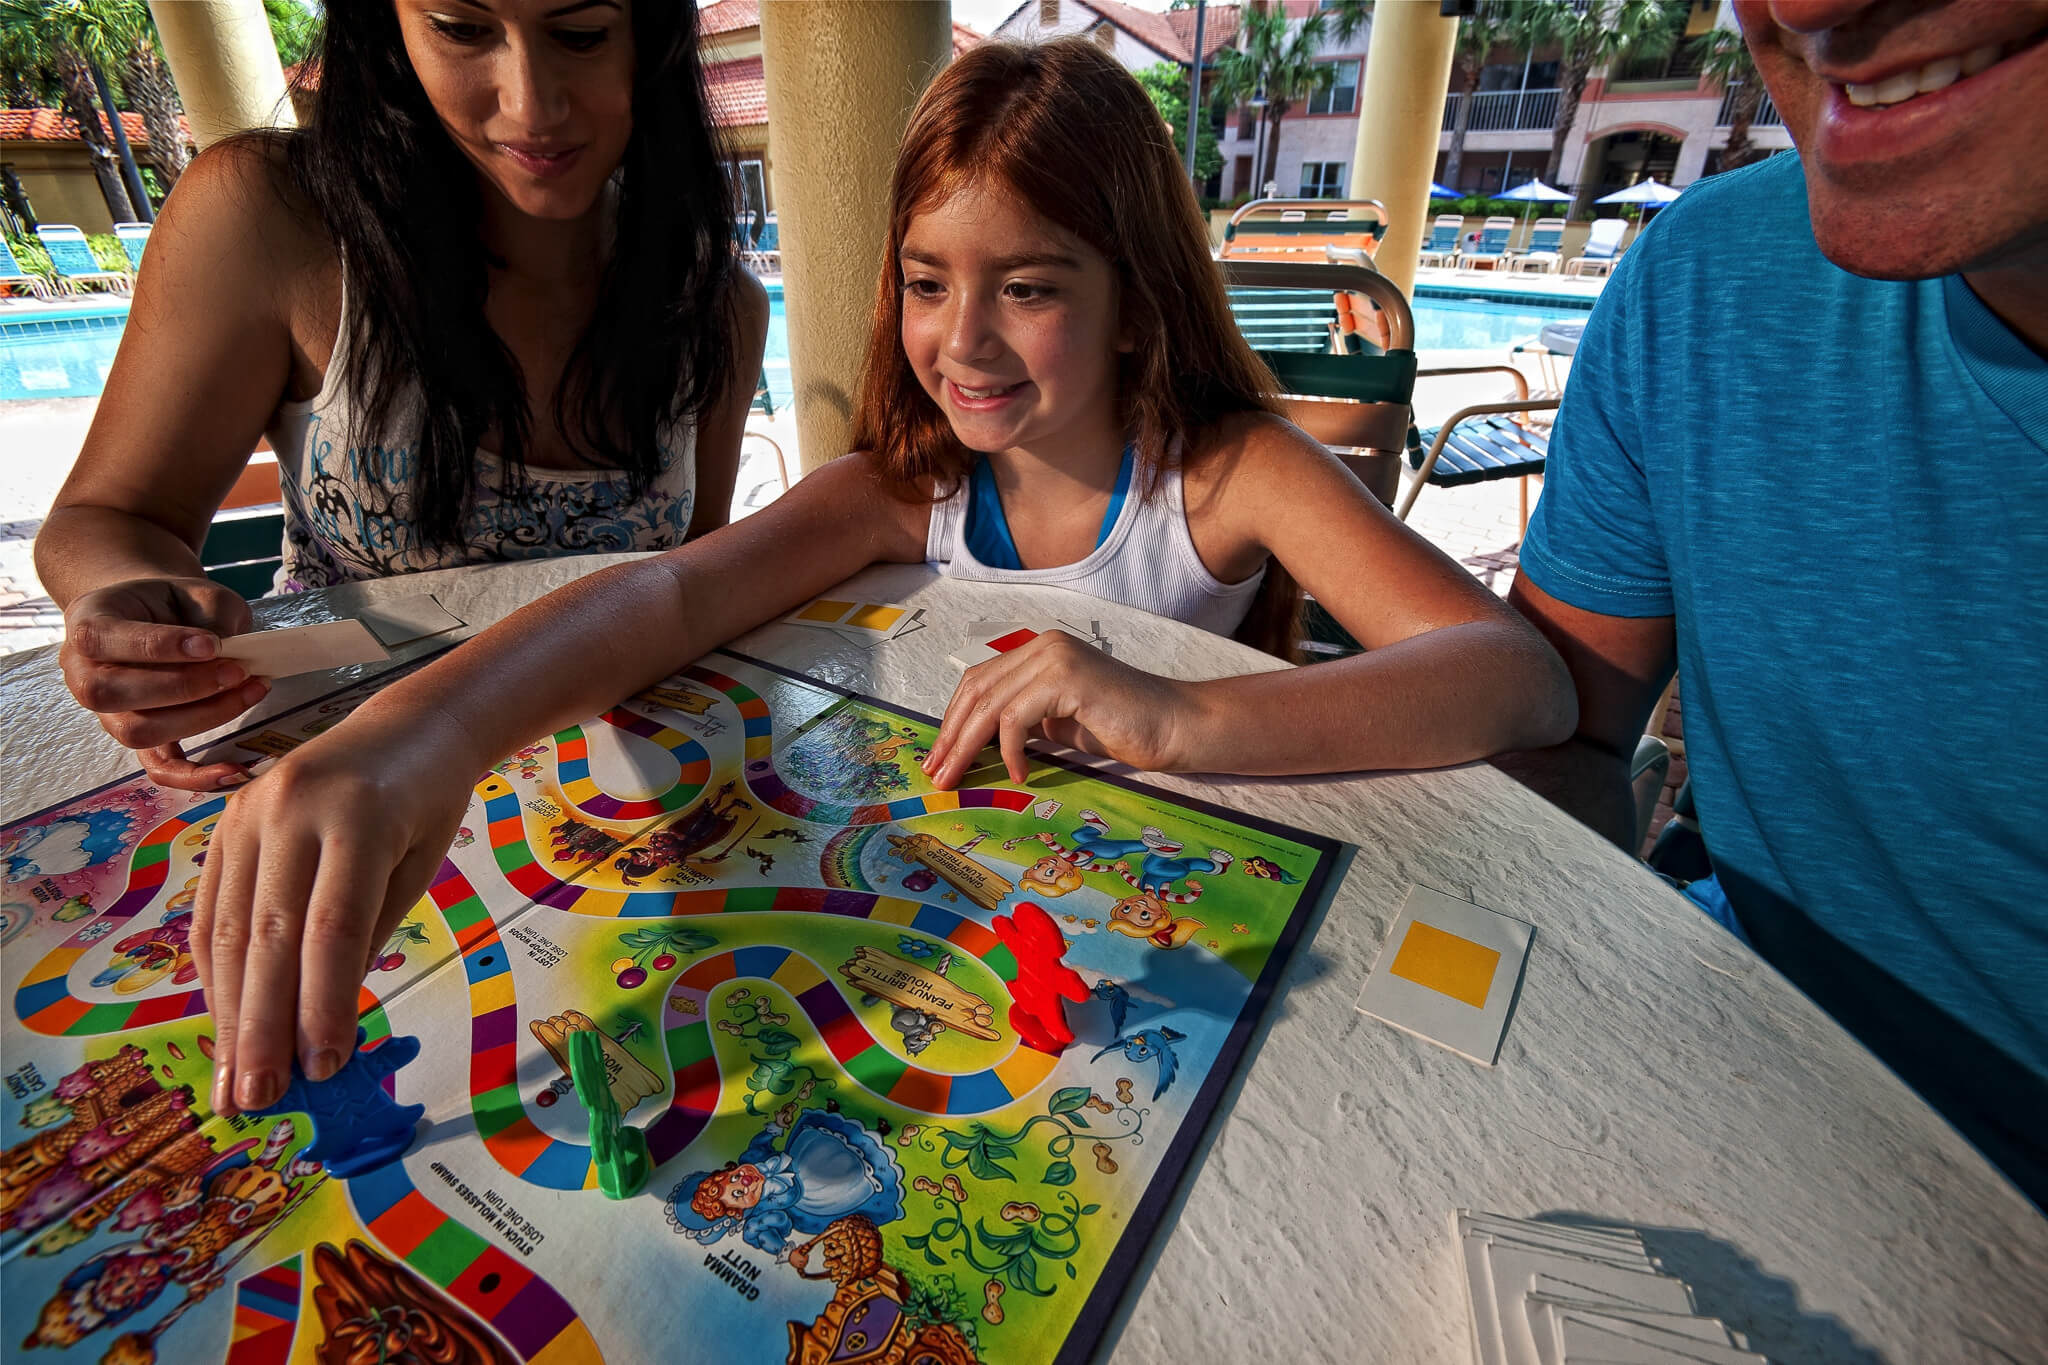 Mother, Father and daughter playing board game on pool deck | Westgate Blue Tree Resort